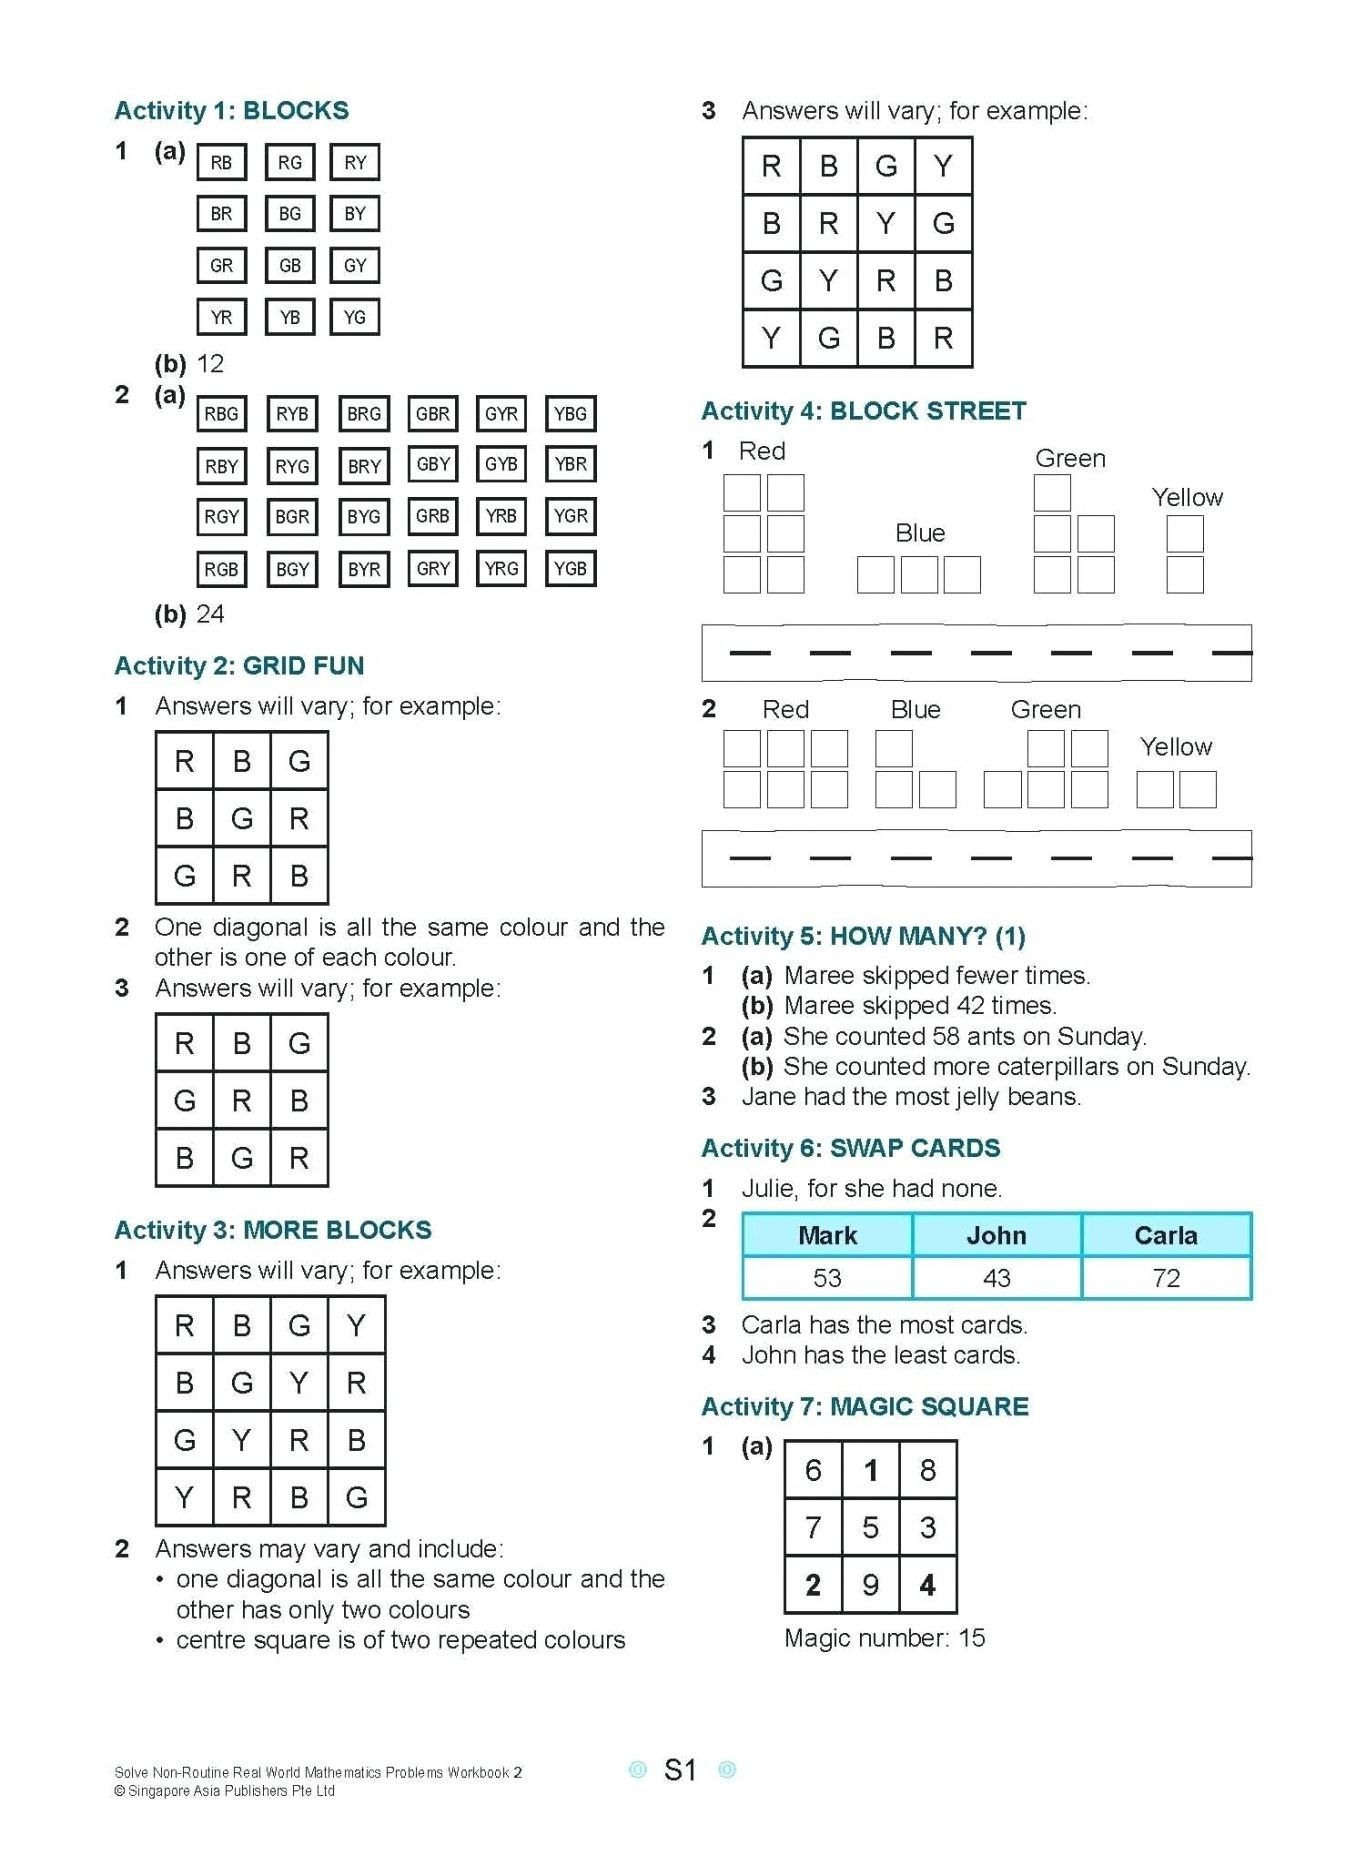 Periodic Table Magic Square Worksheet Answers